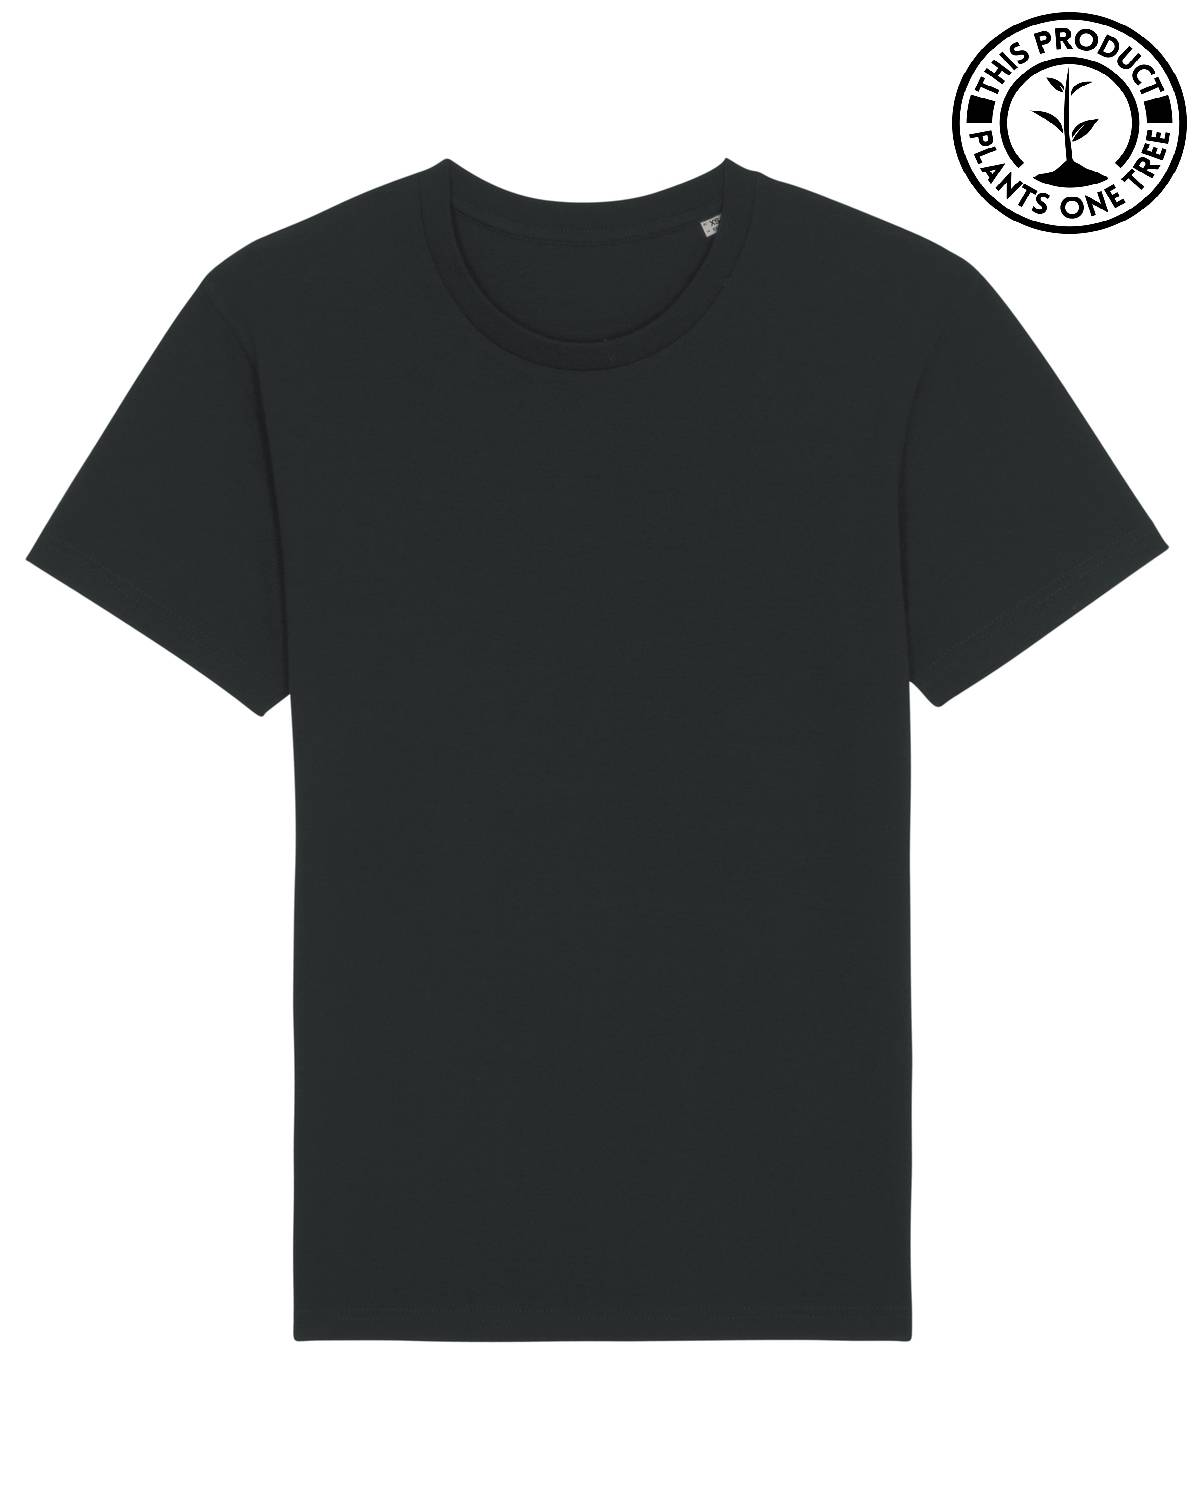 Basic Unisex T-shirt Black